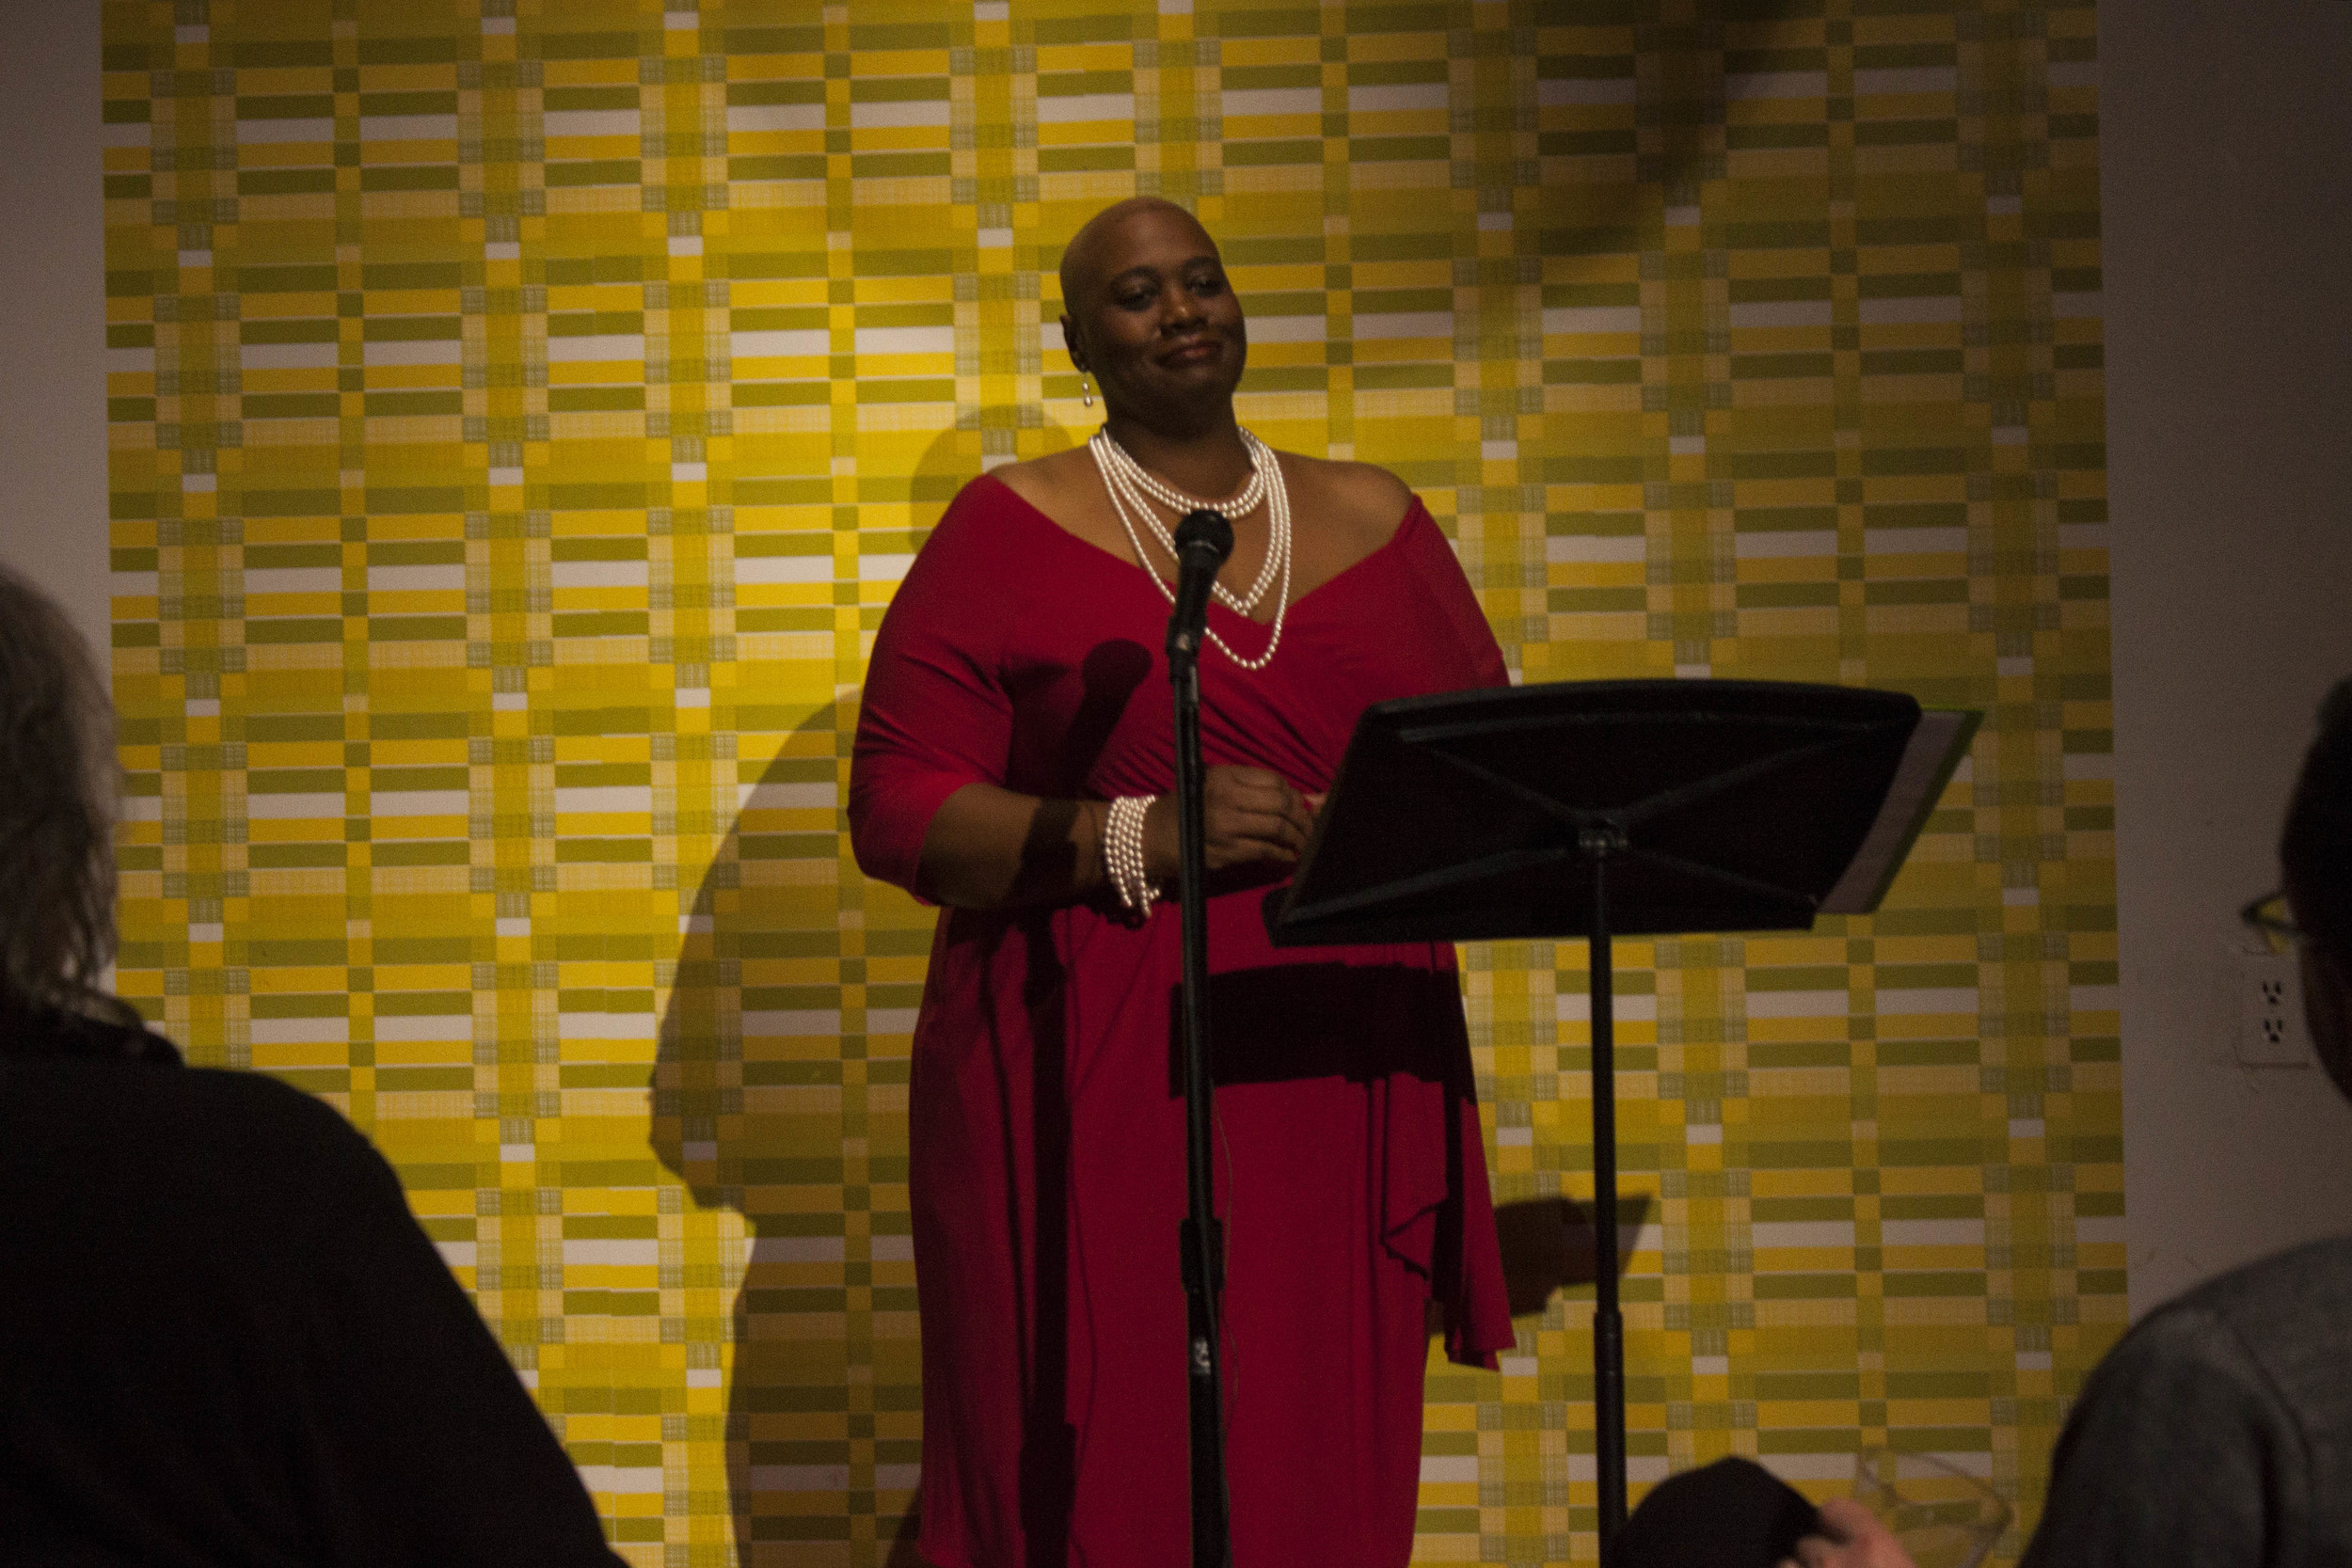 Adriane Williams performs at Memphis Monologues (February 7, 2015)